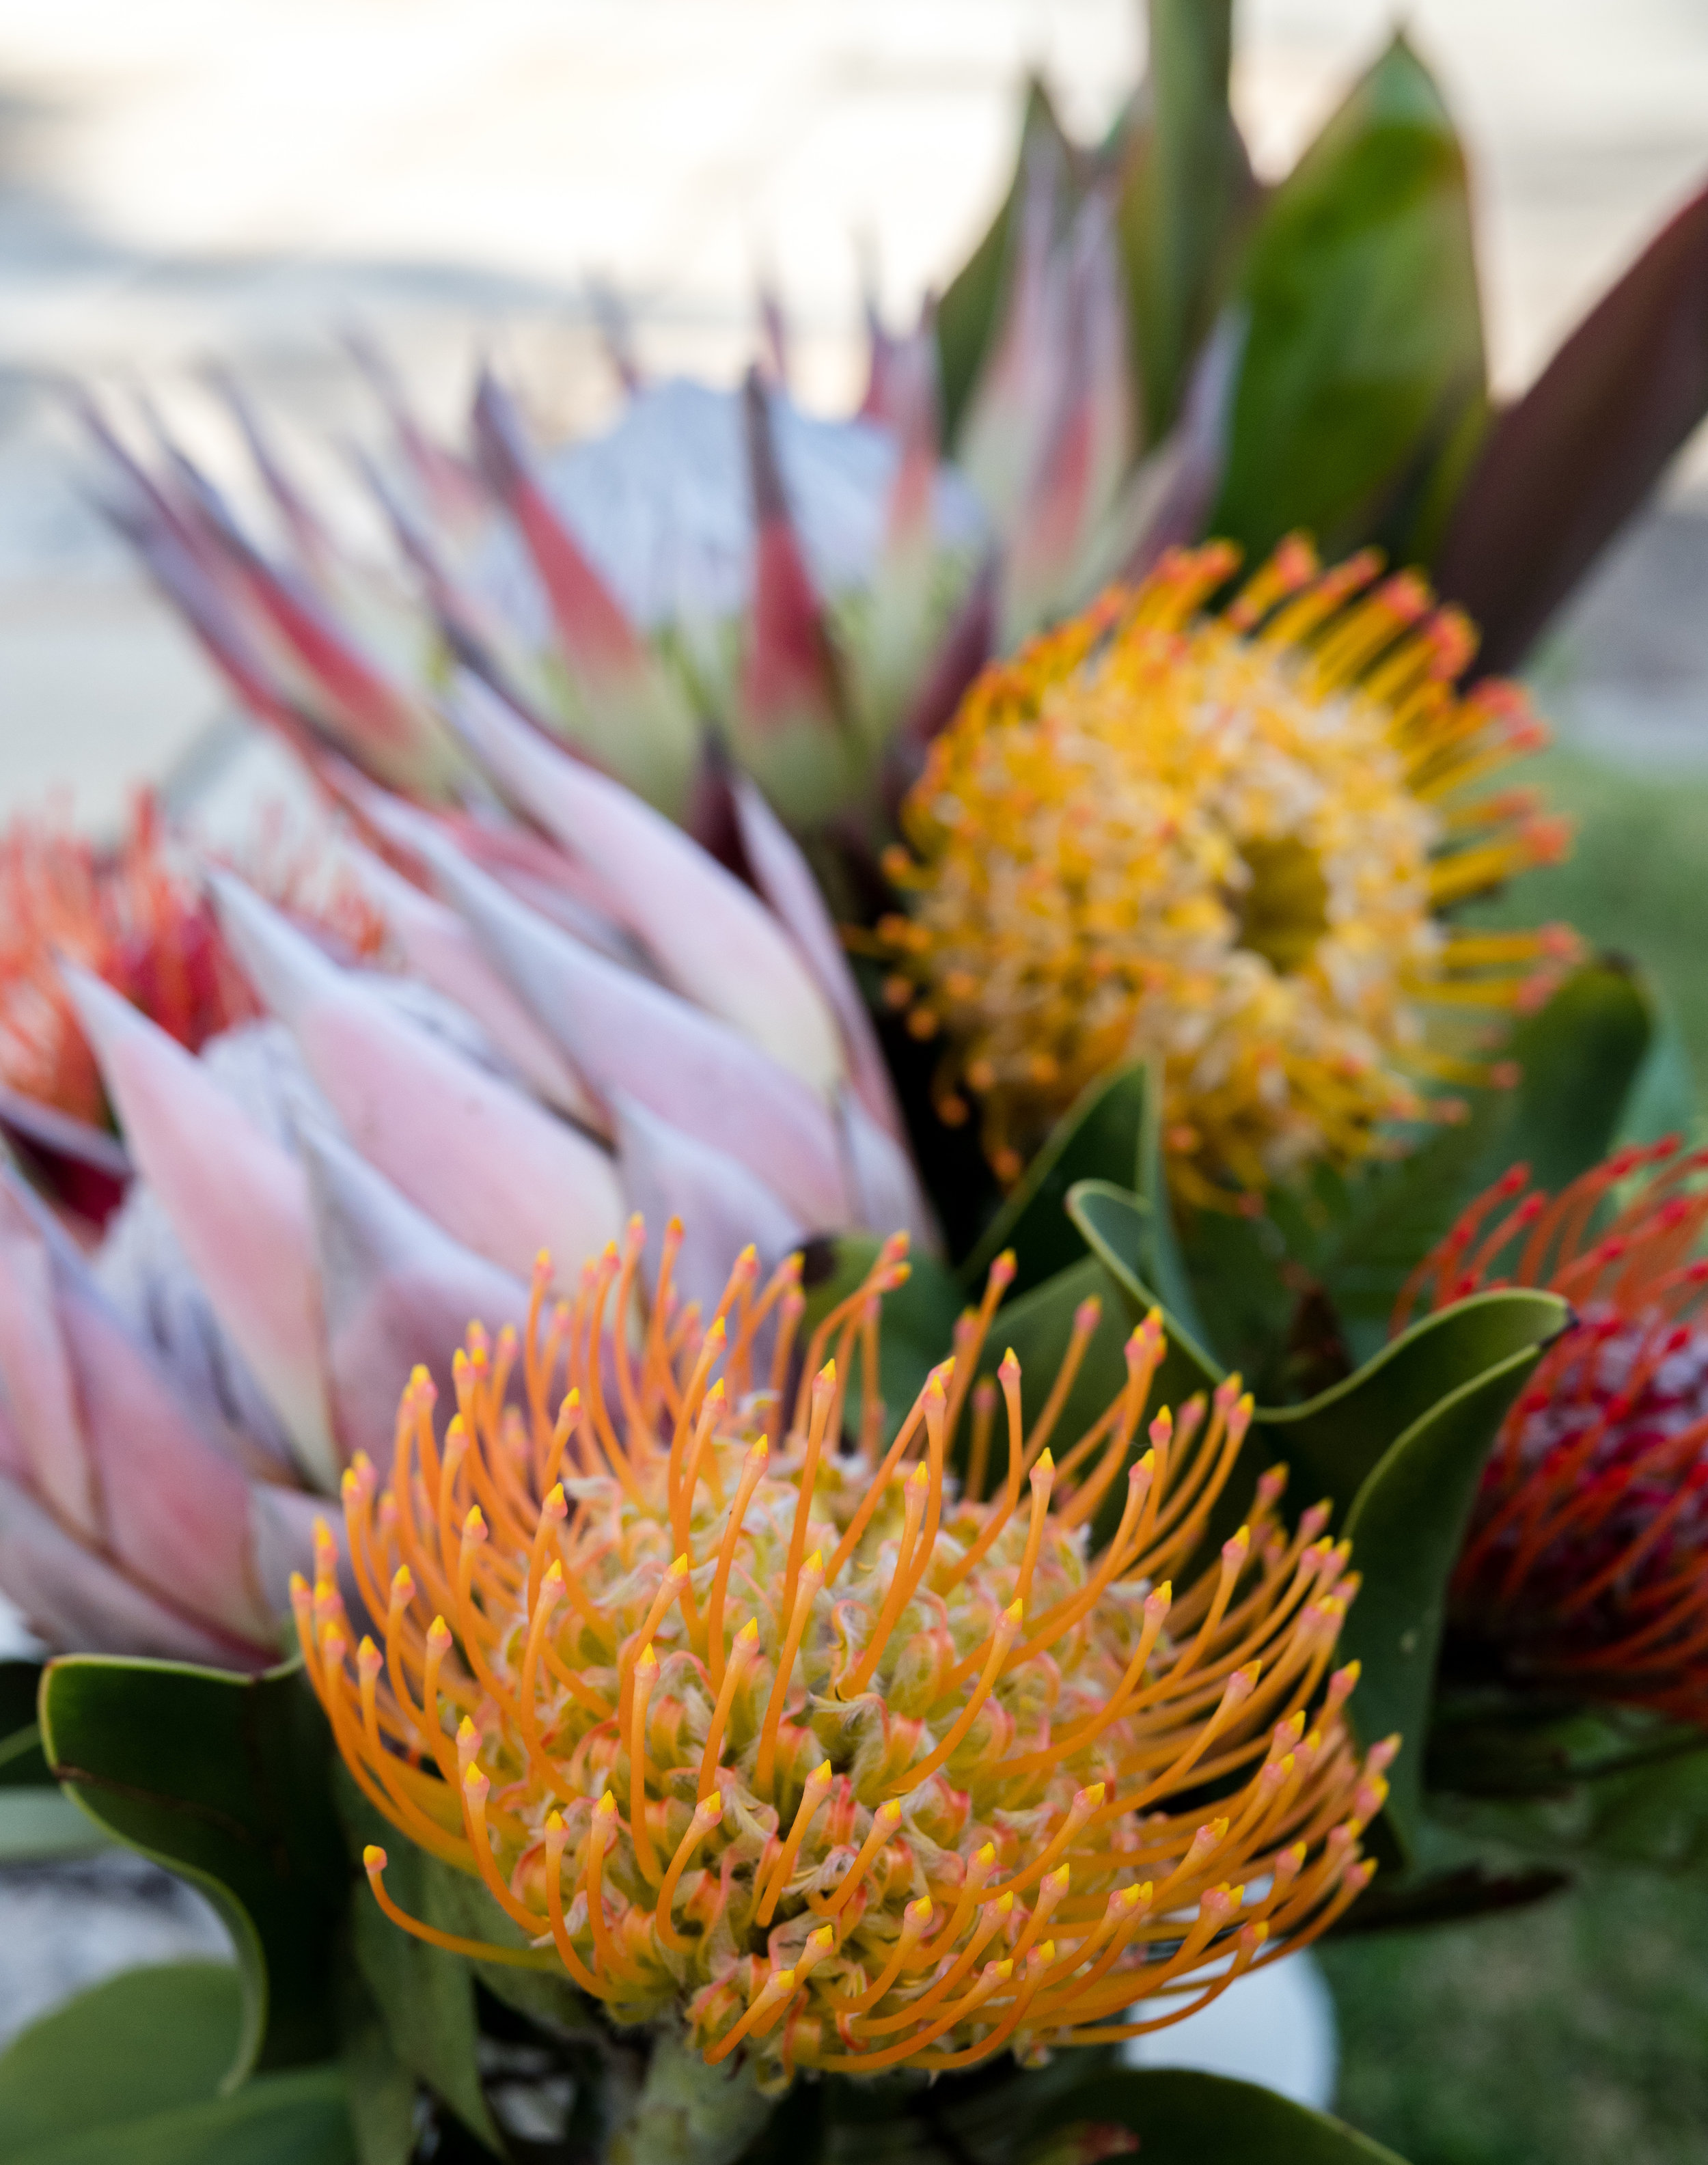 A Royal Hawaiian Mother's Day - Pink King Protea Flowers and Pincushions